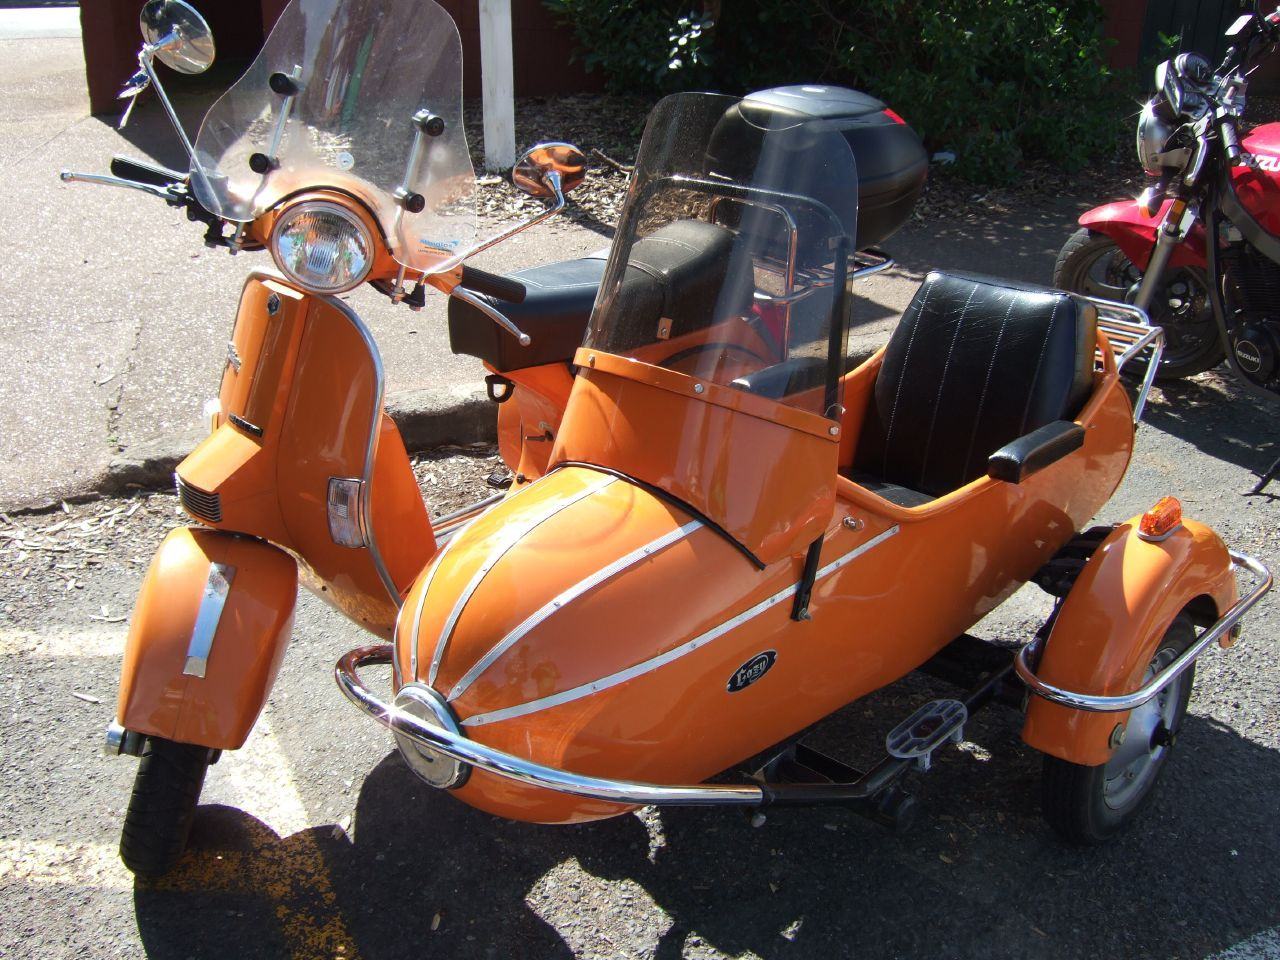 Modifikasi vespa super apps directories - Orange Vespa With Sidecar Bullet